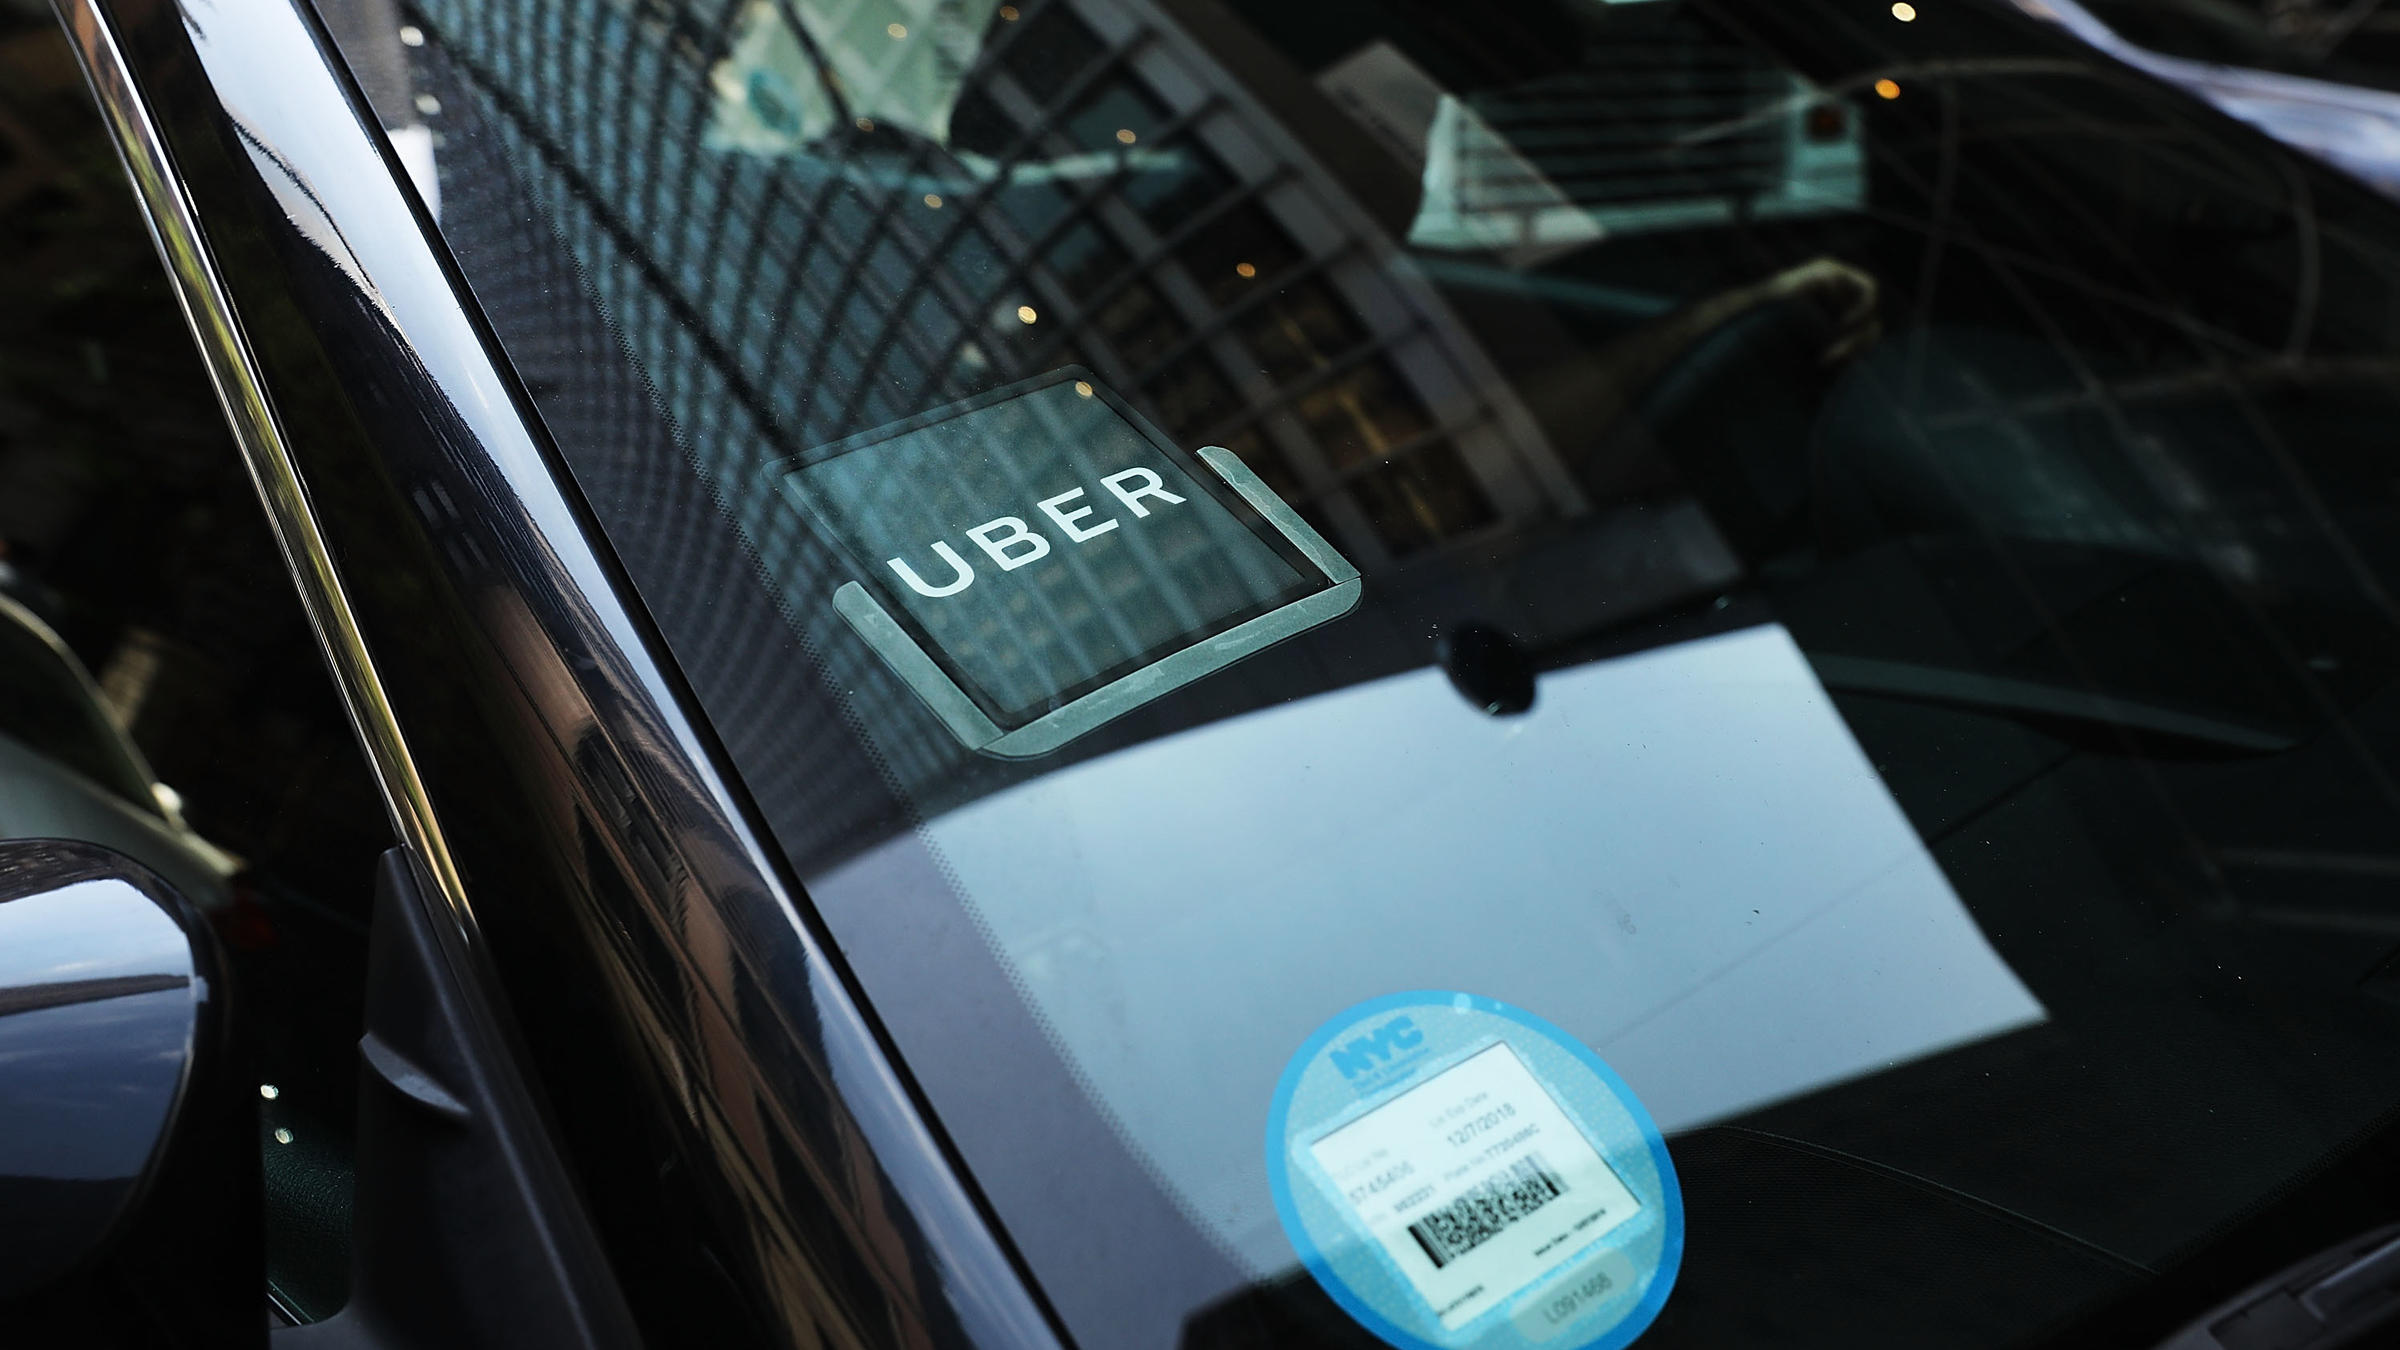 Most Uber, Lyft drivers paid under minimum wage